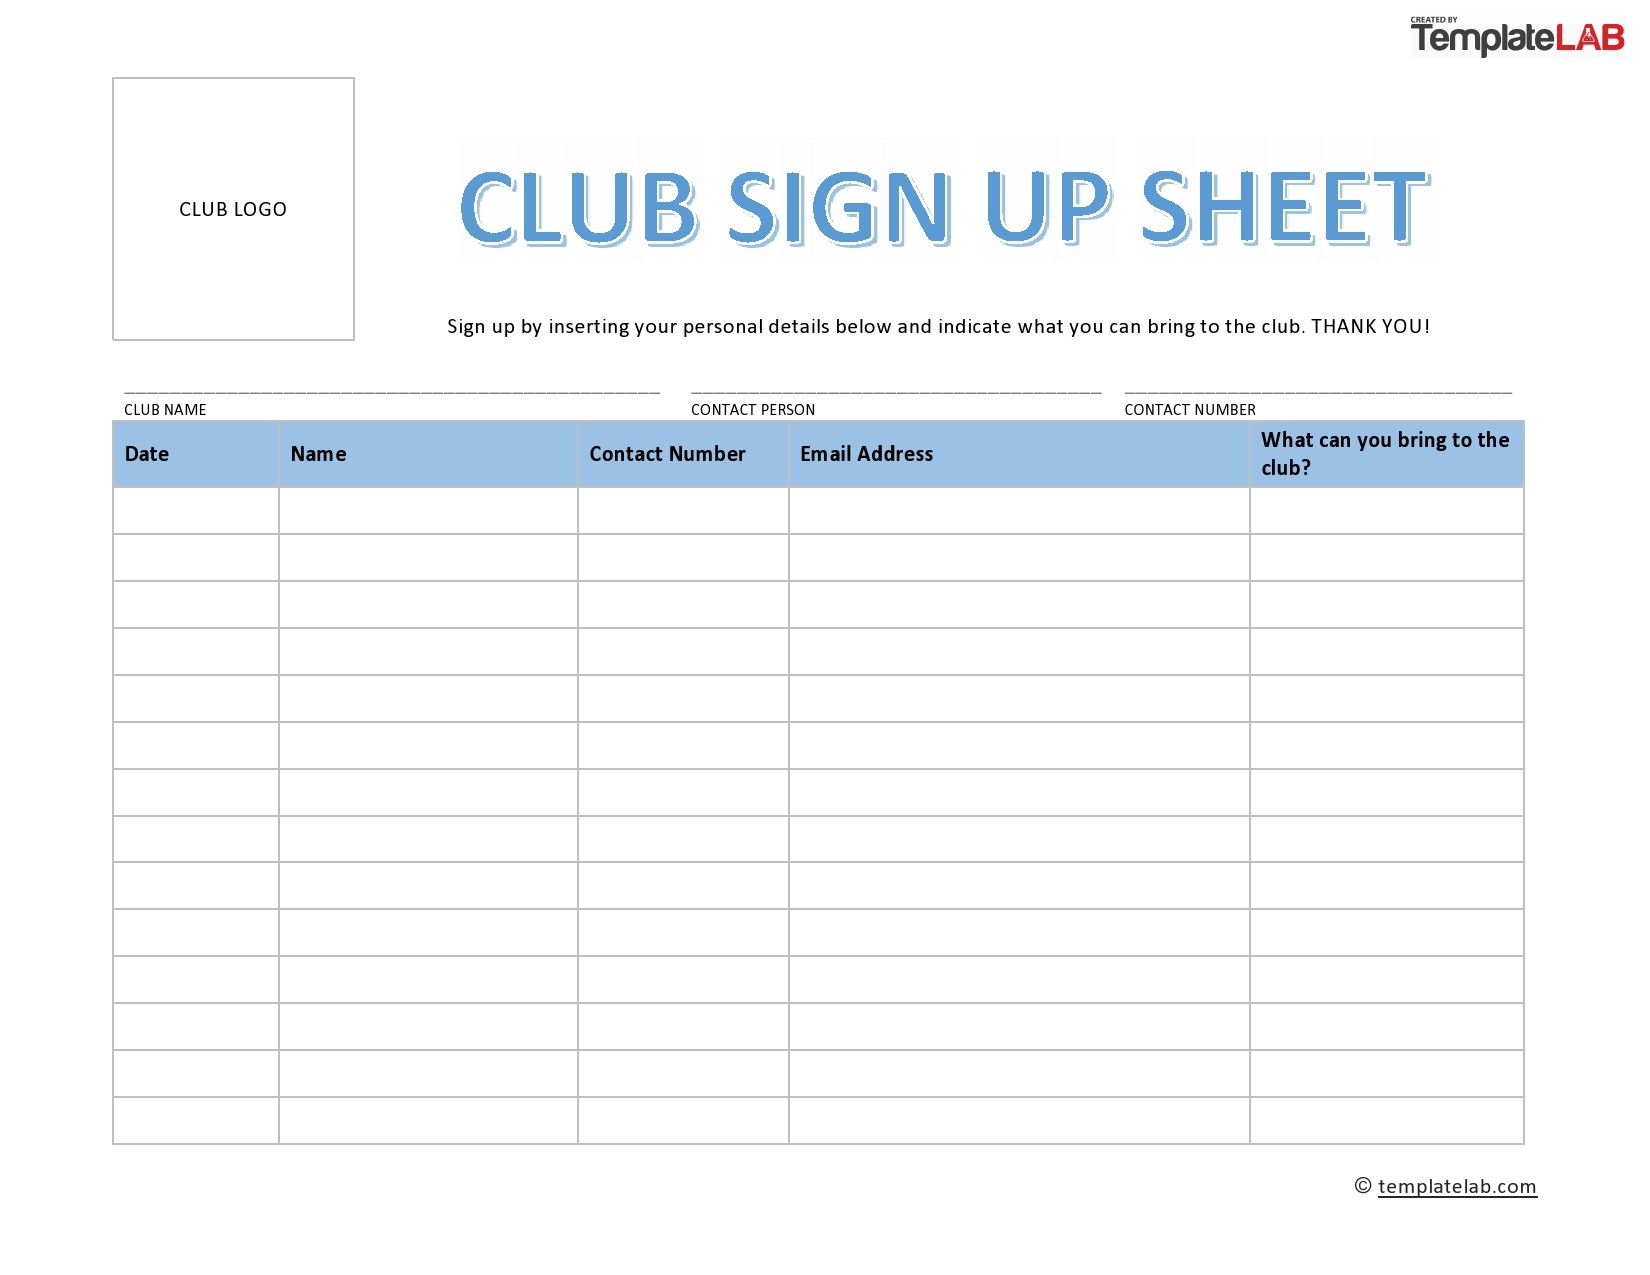 Sign Up Sheet Template Pdf from templatelab.com